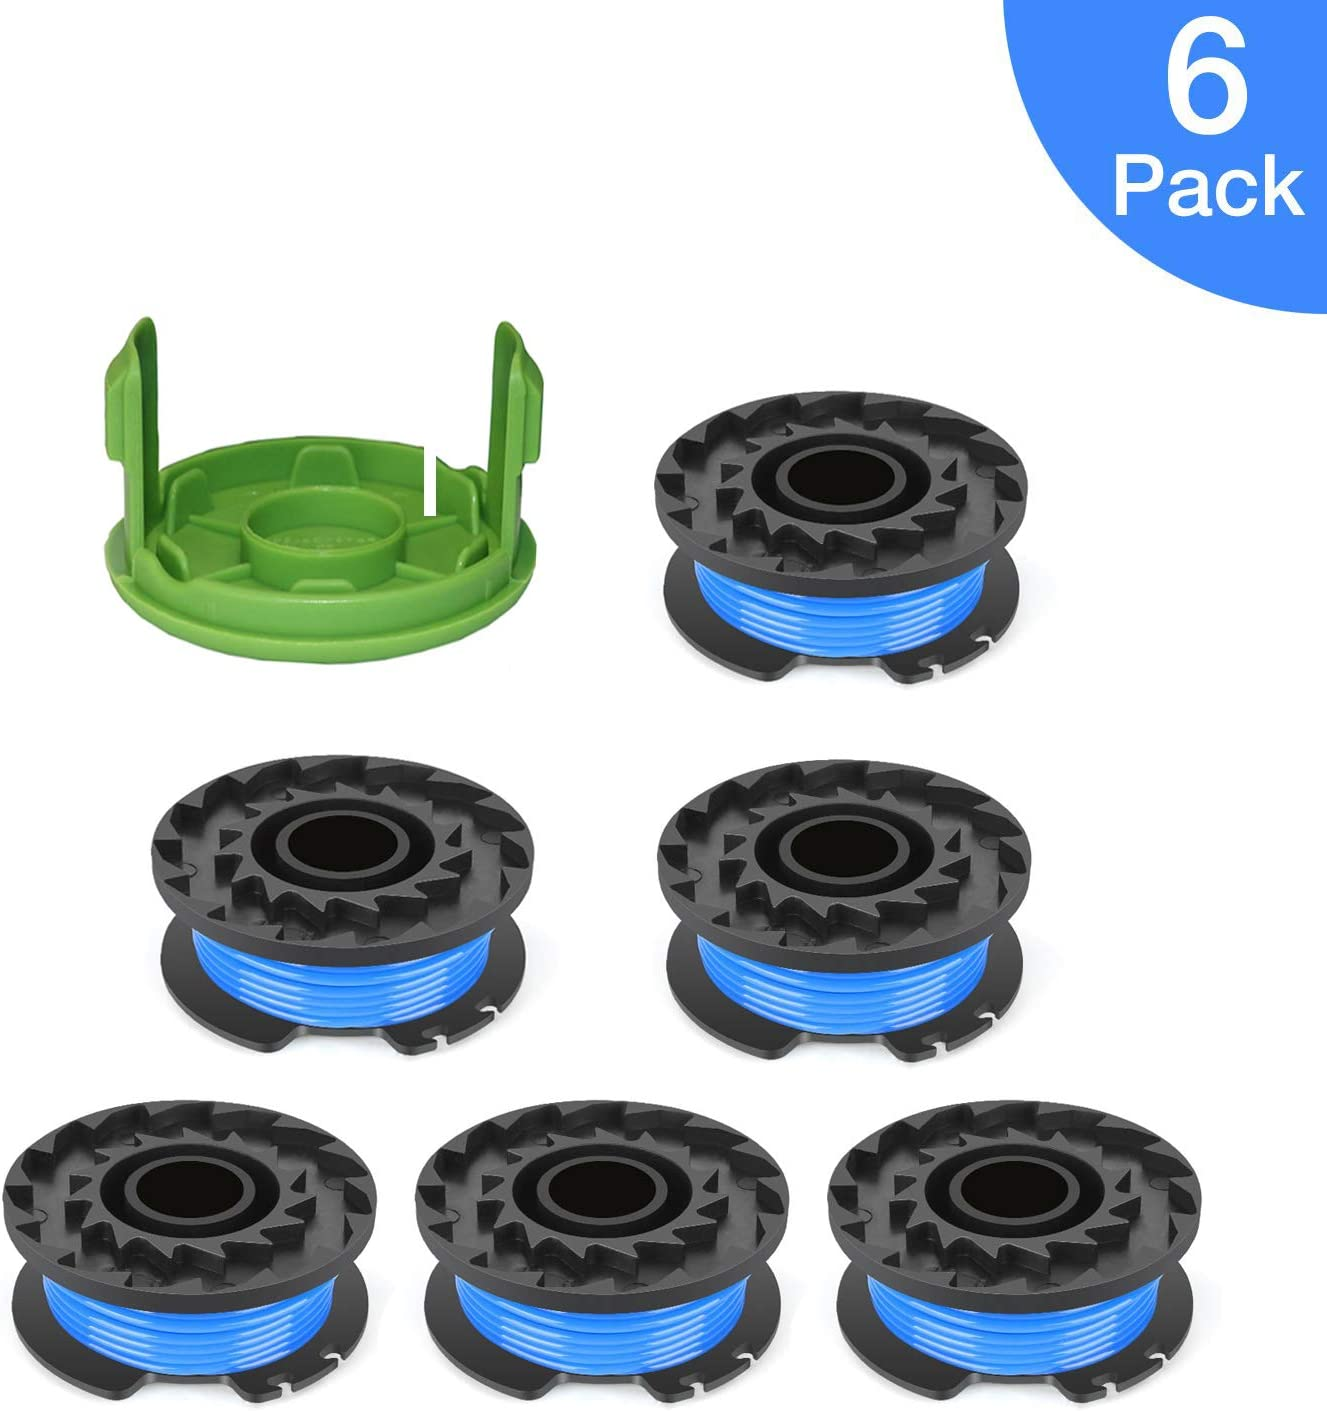 """THTEN Weed Eater Spools Replacement for Greenworks 29092 2130224 Volt 40V 80V Cordless Trimmer 16ft 0.065"""" Single Line String Trimmer with 3411546A-6 Cap Covers Parts Auto-Feed String Edger .(6 Spool"""